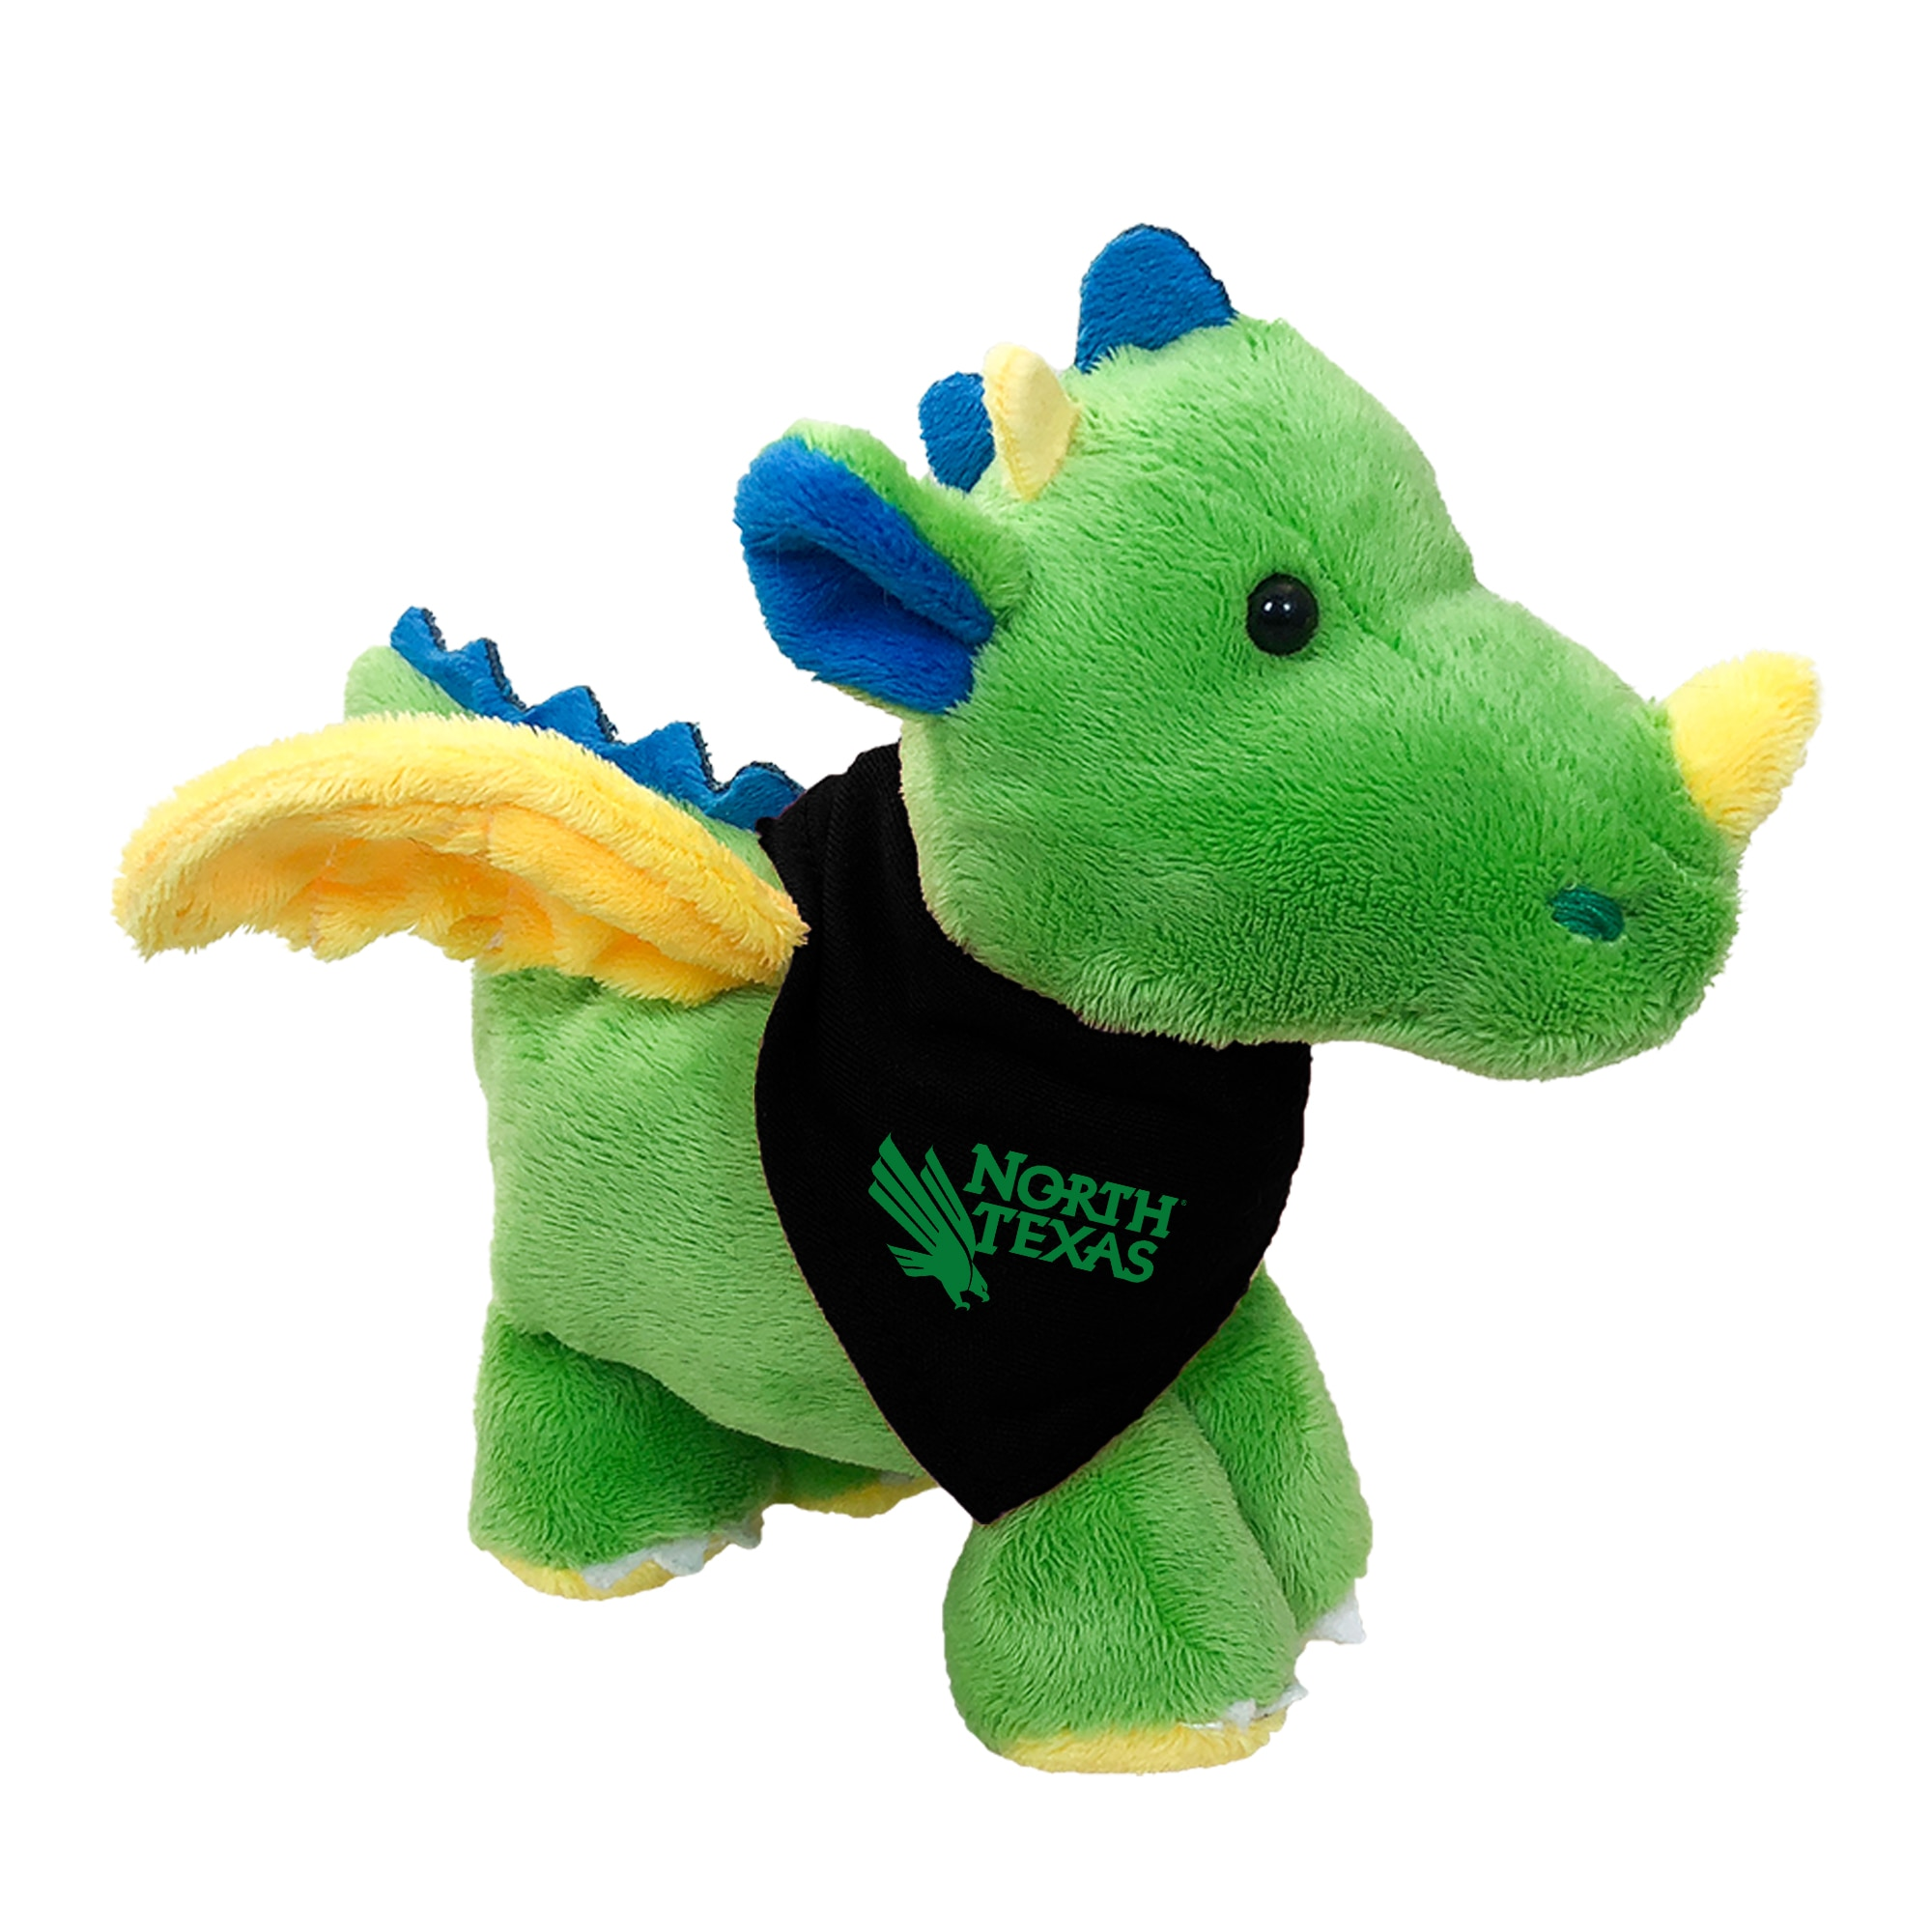 University of North Texas 6in Plush Dragon Short Stack with Bandana